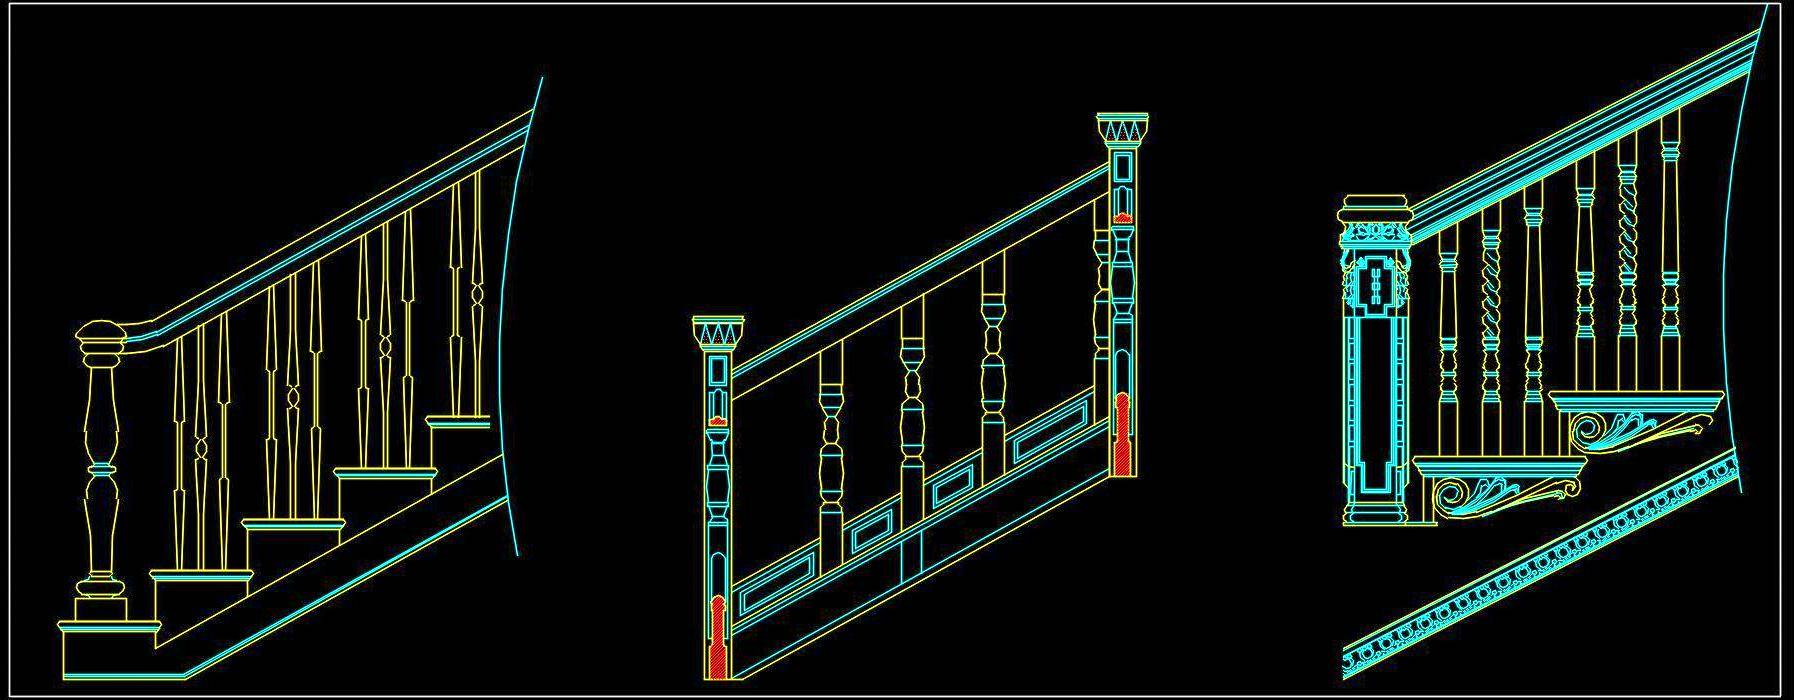 Railing Cad Block Free Download - Autocad DWG | Plan n Design